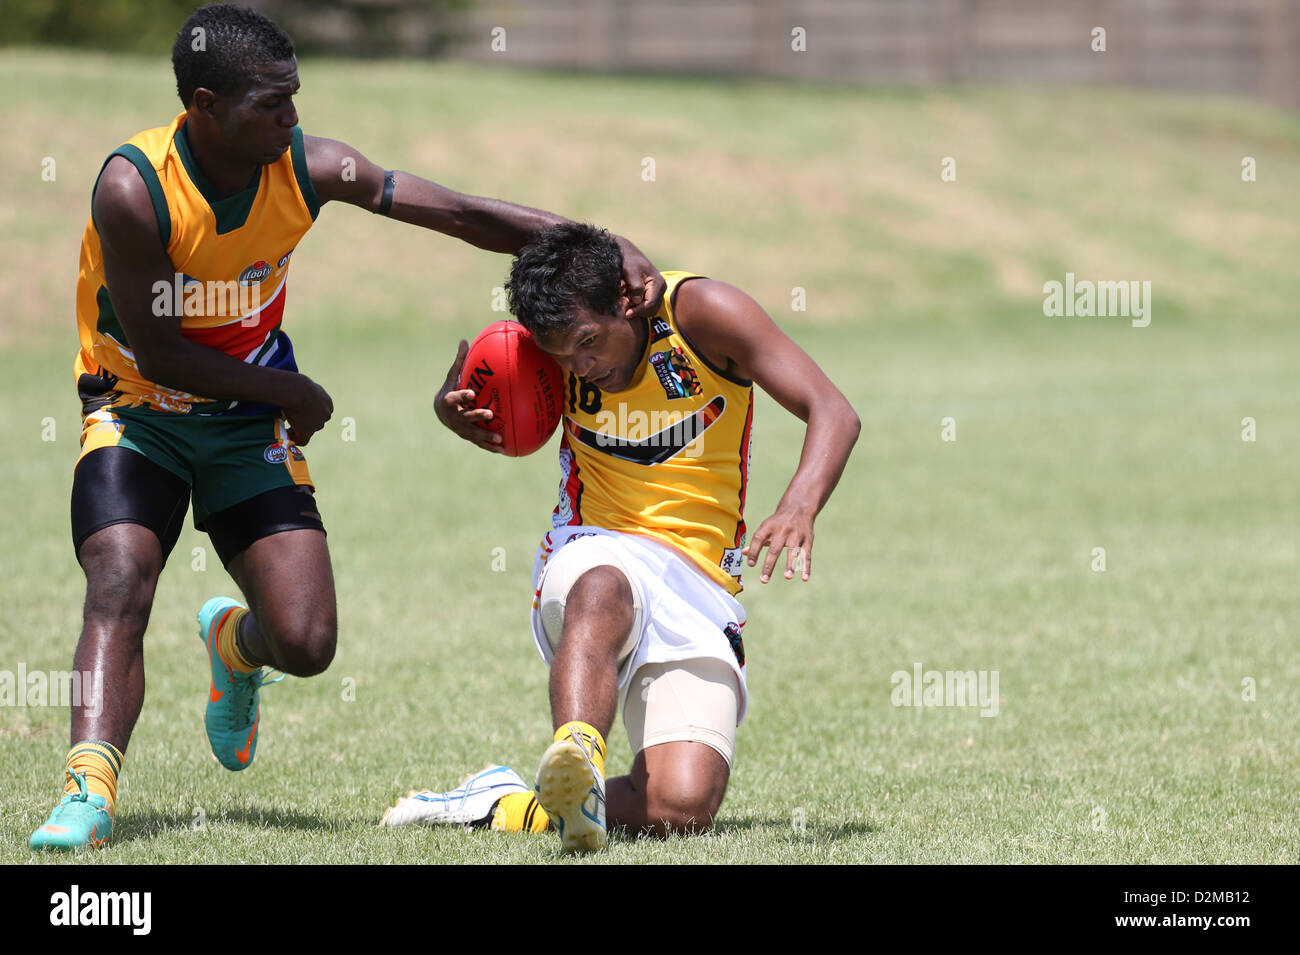 POTCHEFSTROOM, SOUTH AFRICA - JANUARY 28, Thabiso Phakedi (GP Blues) of the SA Lions tackles Kyle Jackson (Whyalla, - Stock Image